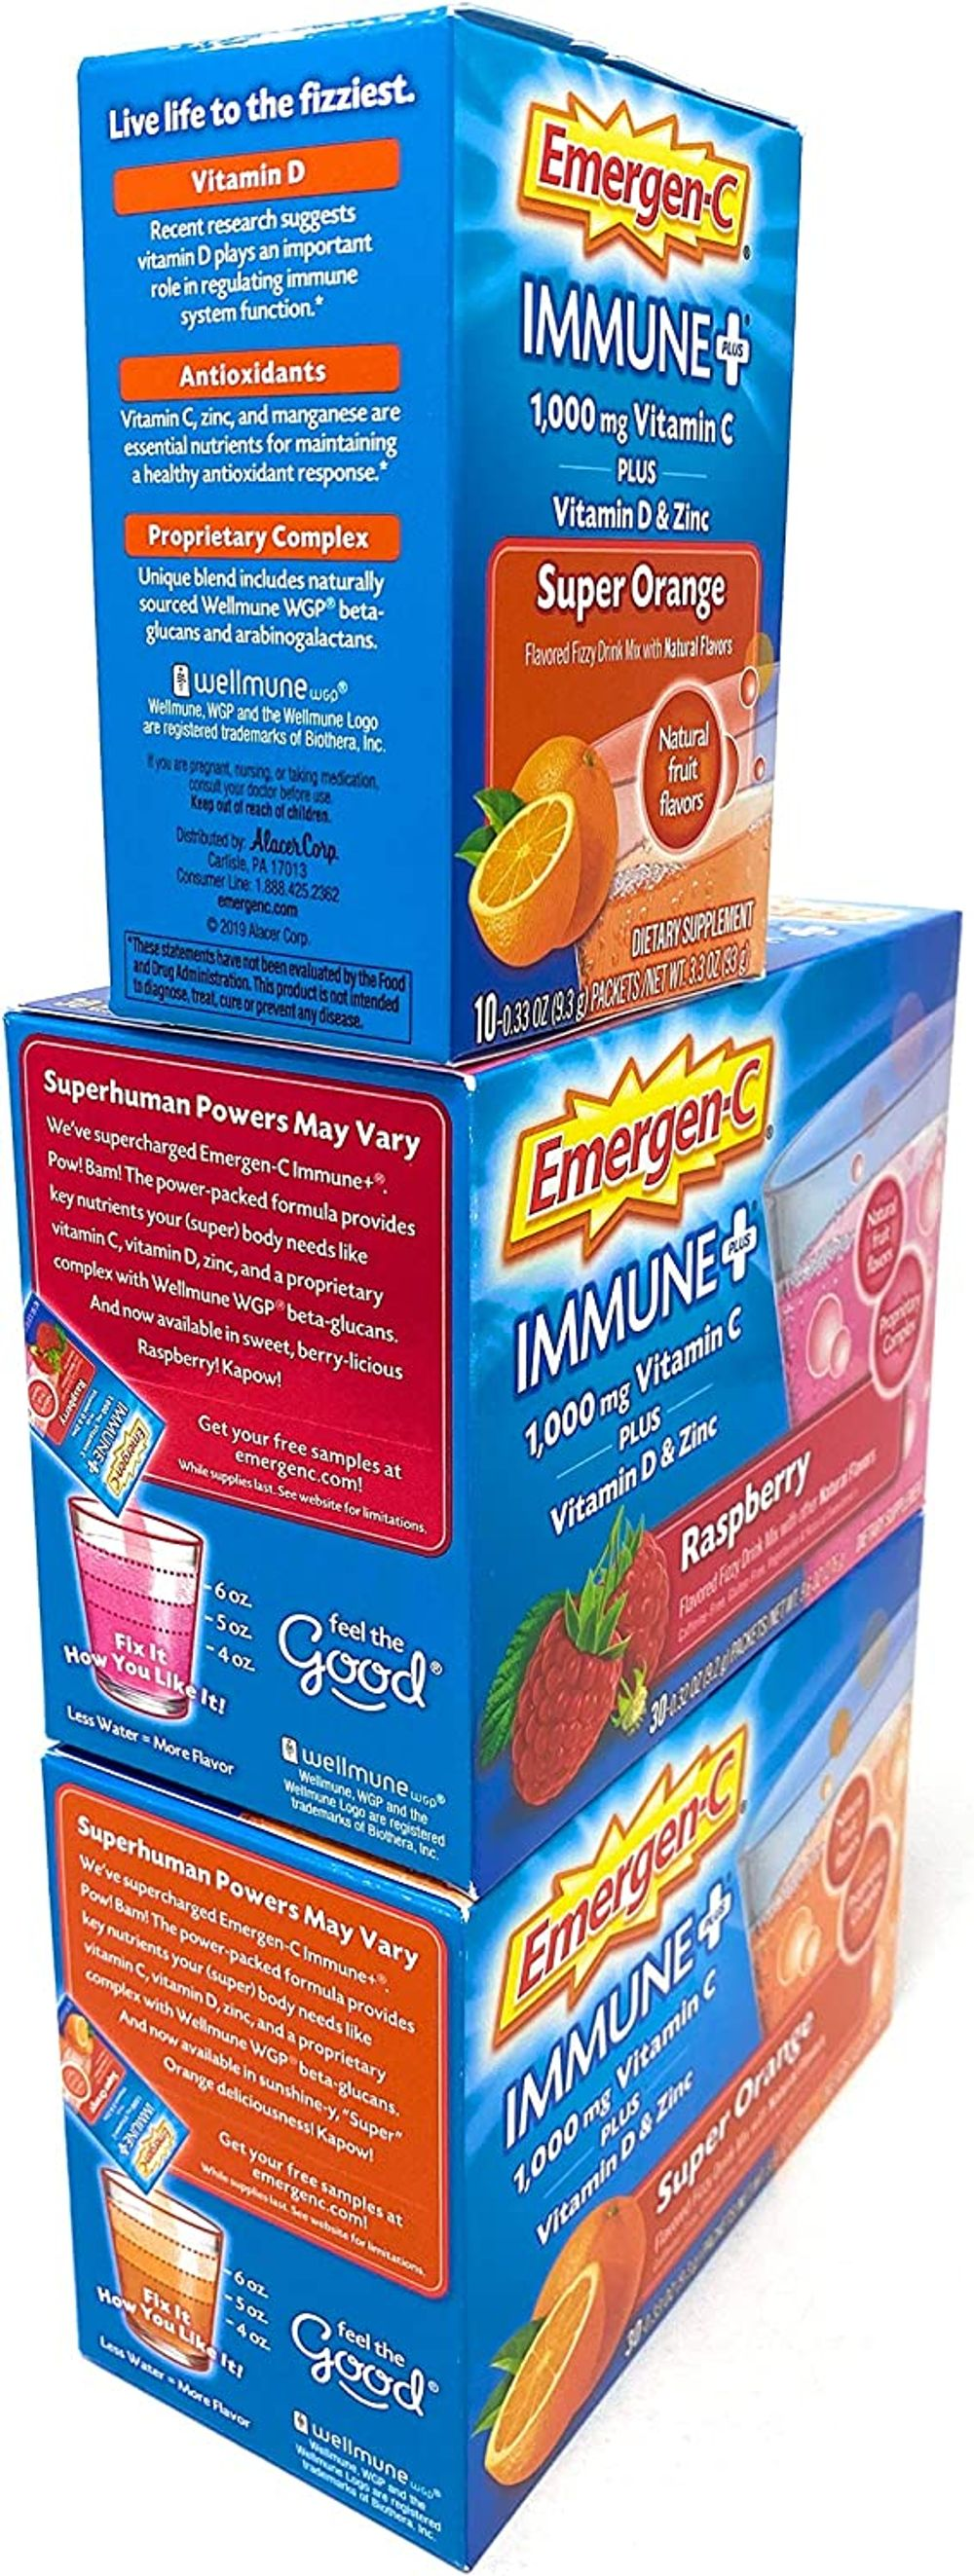 Emergen-C Immune Plus with Vitamin D and Zinc Variety Pack, 70 ct.